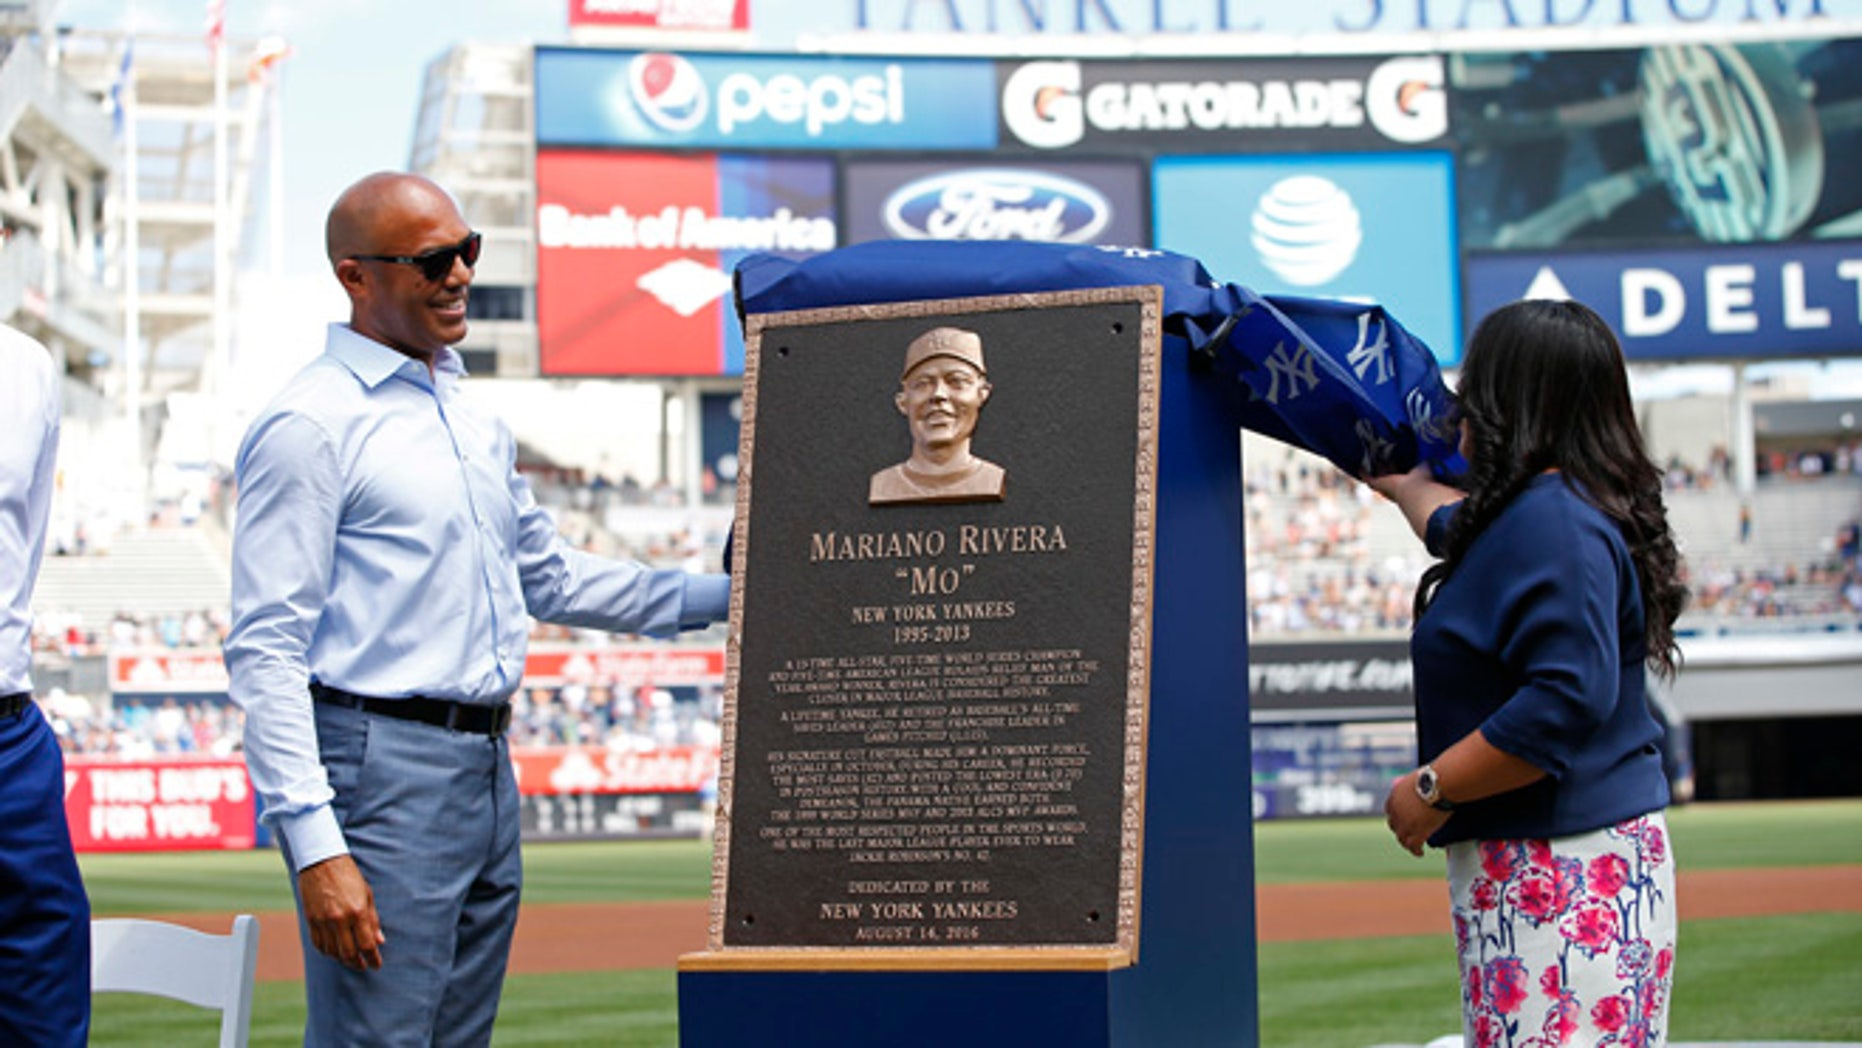 Former New York Yankees closer Mariano Rivera, left, and his wife, Clara, unveil his Monument Park plaque before a baseball game Sunday, Aug. 14, 2016, at Yankee Stadium in New York. (AP Photo/Rich Schultz/Pool)